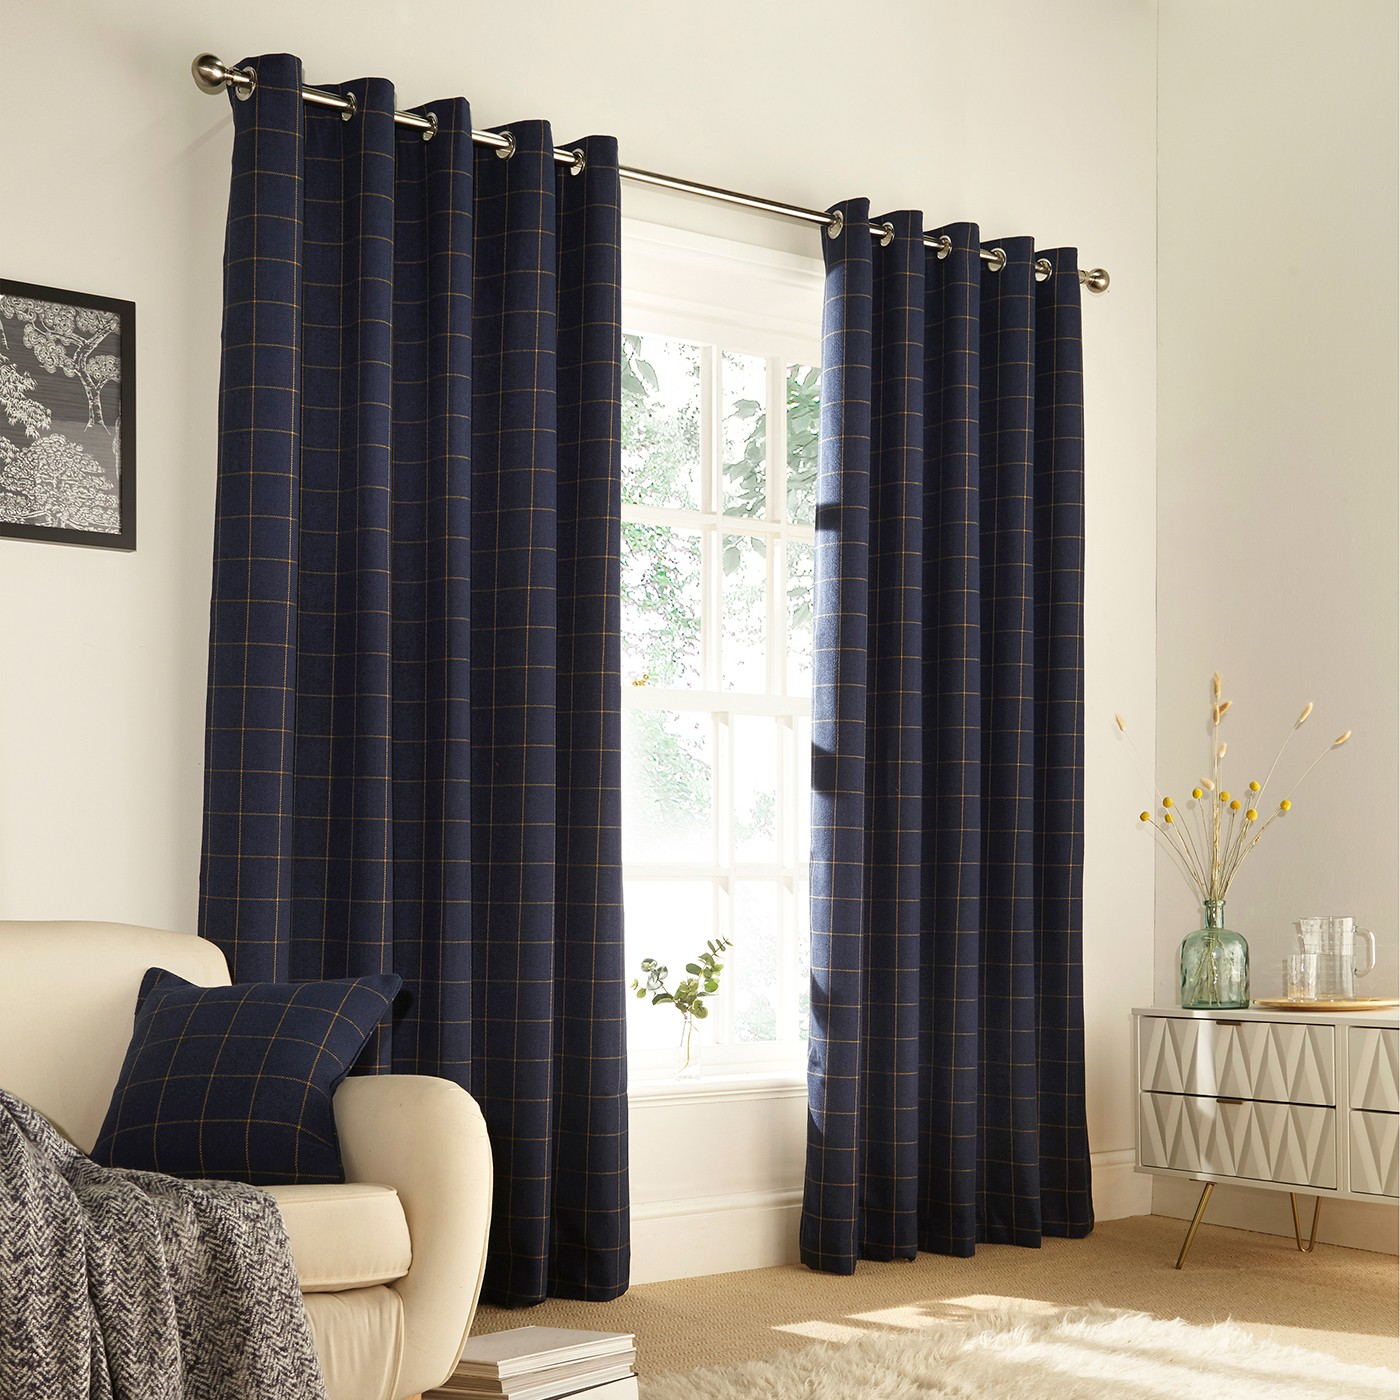 The Home Furnishings Company Ellis Navy Windowpane Curtains and Cushion